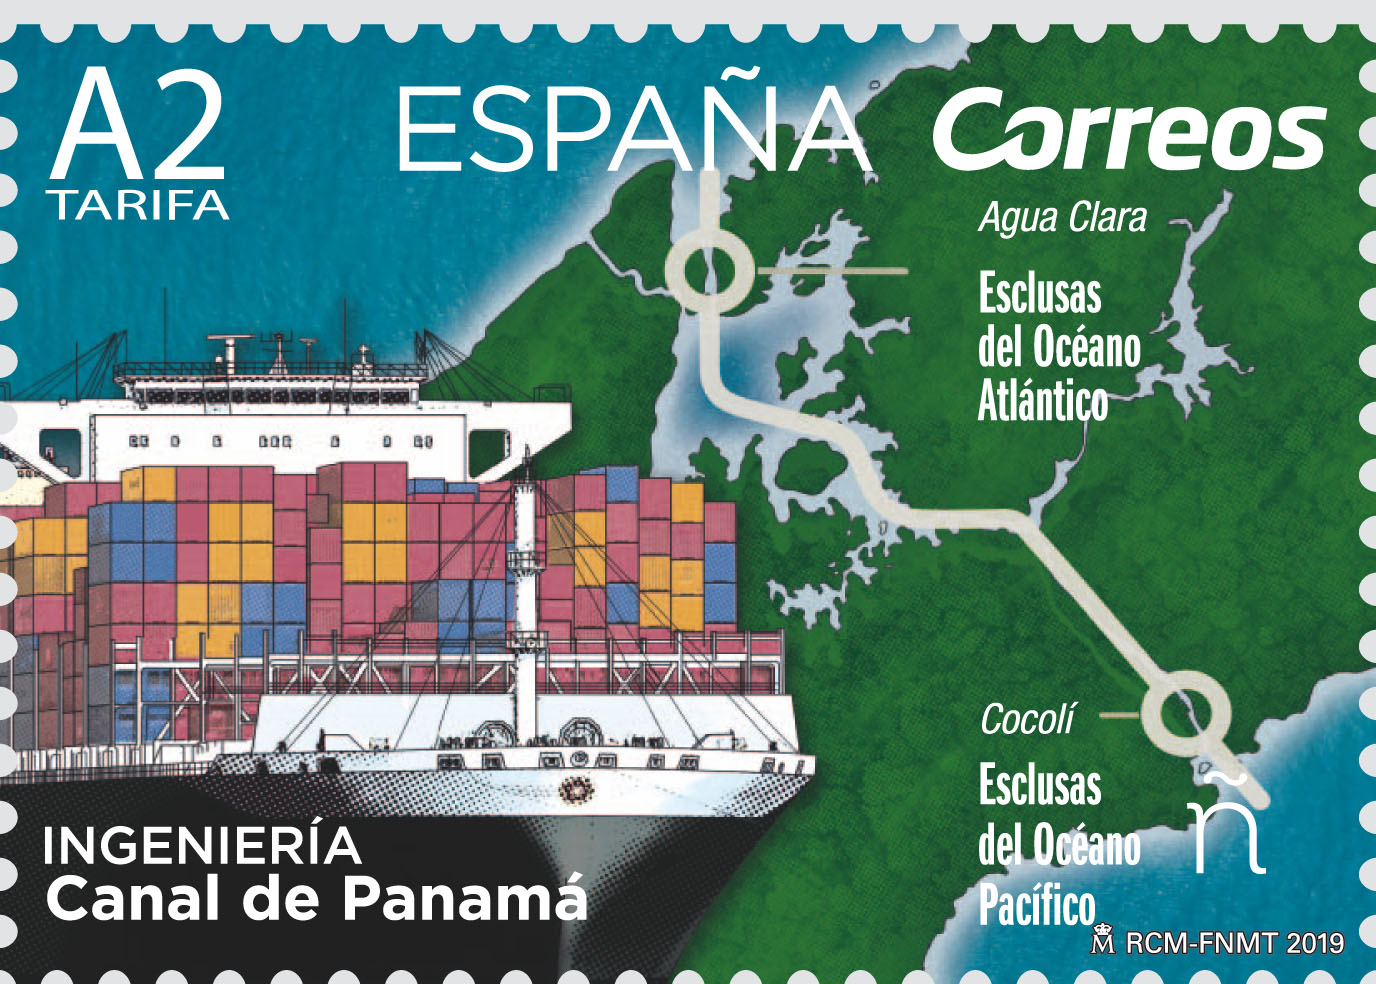 Spain - Engineering: Panama Canal (January 2, 2019)